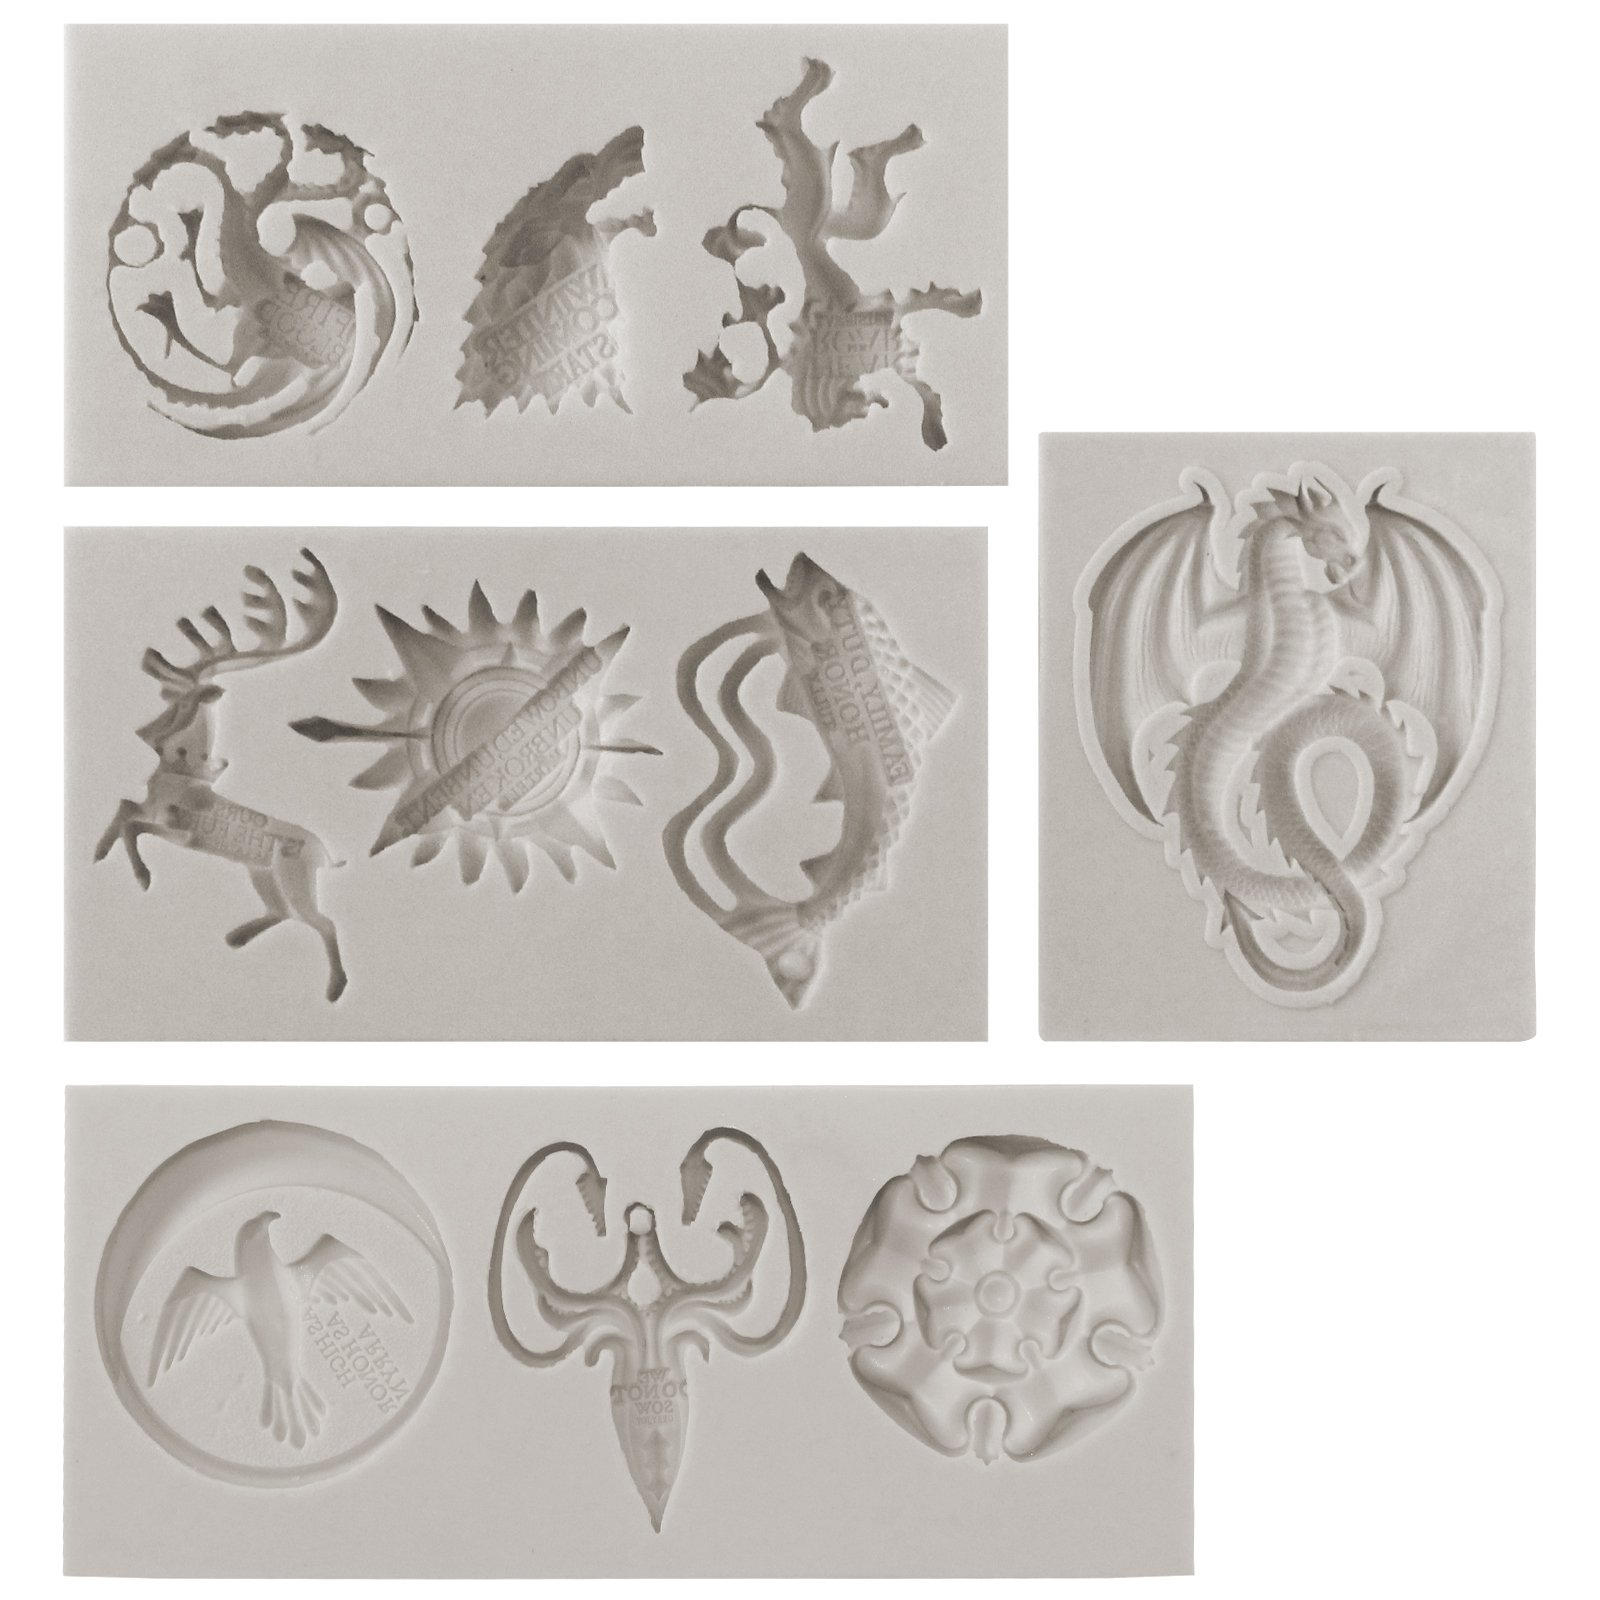 Funshowcase Game Thrones GOT inspired House Sigils and Mottos Silicone Molds for Sugarcraft, Fondant Cake Decoration, Cupcake Topper, Polymer Clay Resin Casting Jewelry and Crafting Projects, 4-in-set by FUNSHOWCASE (Image #2)